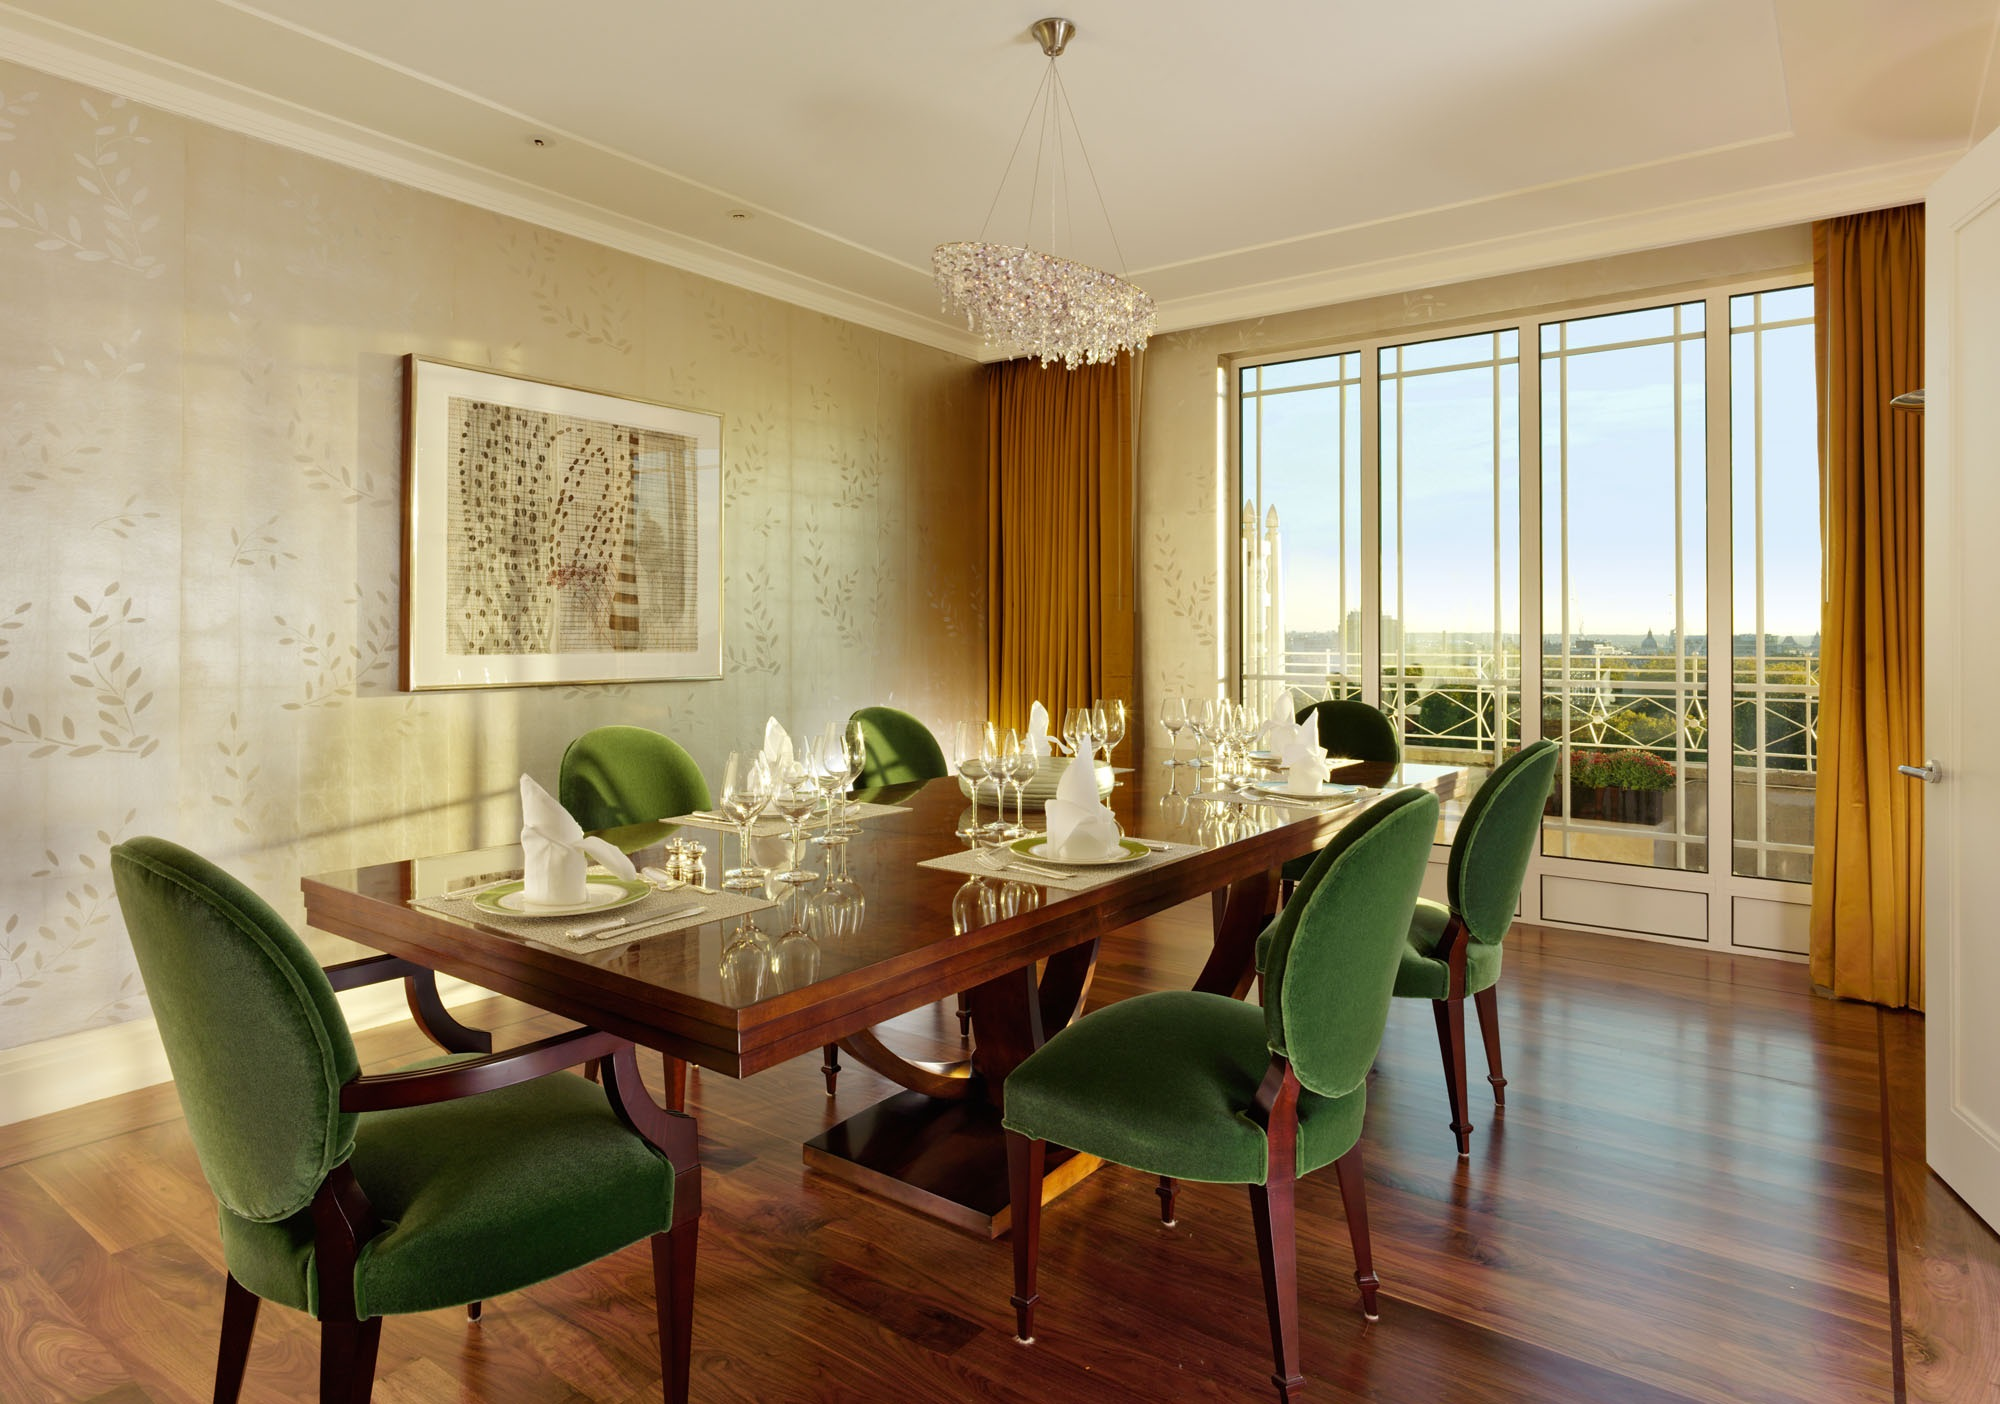 Hollywood Glamour - The largest penthouse suite at The Dorchester, The Harlequin Penthouse is made up of a master bedroom with an en-suite bathroom and dressing room, a dining room, living room, bar and large outside terrace overlooking Hyde Park. Two sets of French doors lead onto the terrace and flood the room with natural light. It was in this very room that Elizabeth Taylor received the news of her record-breaking, multi-million pound deal to star in the Hollywood epic Cleopatra and the suite still glows with Hollywood glamour. The dining room seats eight and features a bespoke crystal chandelier by Metalarté, echoing the fabled diamond collection of Ms. Taylor. The luxurious master bathroom features black Nero Marquina floors with under-floor heating, walls of book-matched white Arabescato Oro marble slabs, white onyx vanities and a large freestanding bath and a state-of-the-art shower toilet by Geberit. The Harlequin Penthouse is available as a two-bedroom suite and the second bedroom still has the original pink marble bathroom that was installed for Elizabeth Taylor.